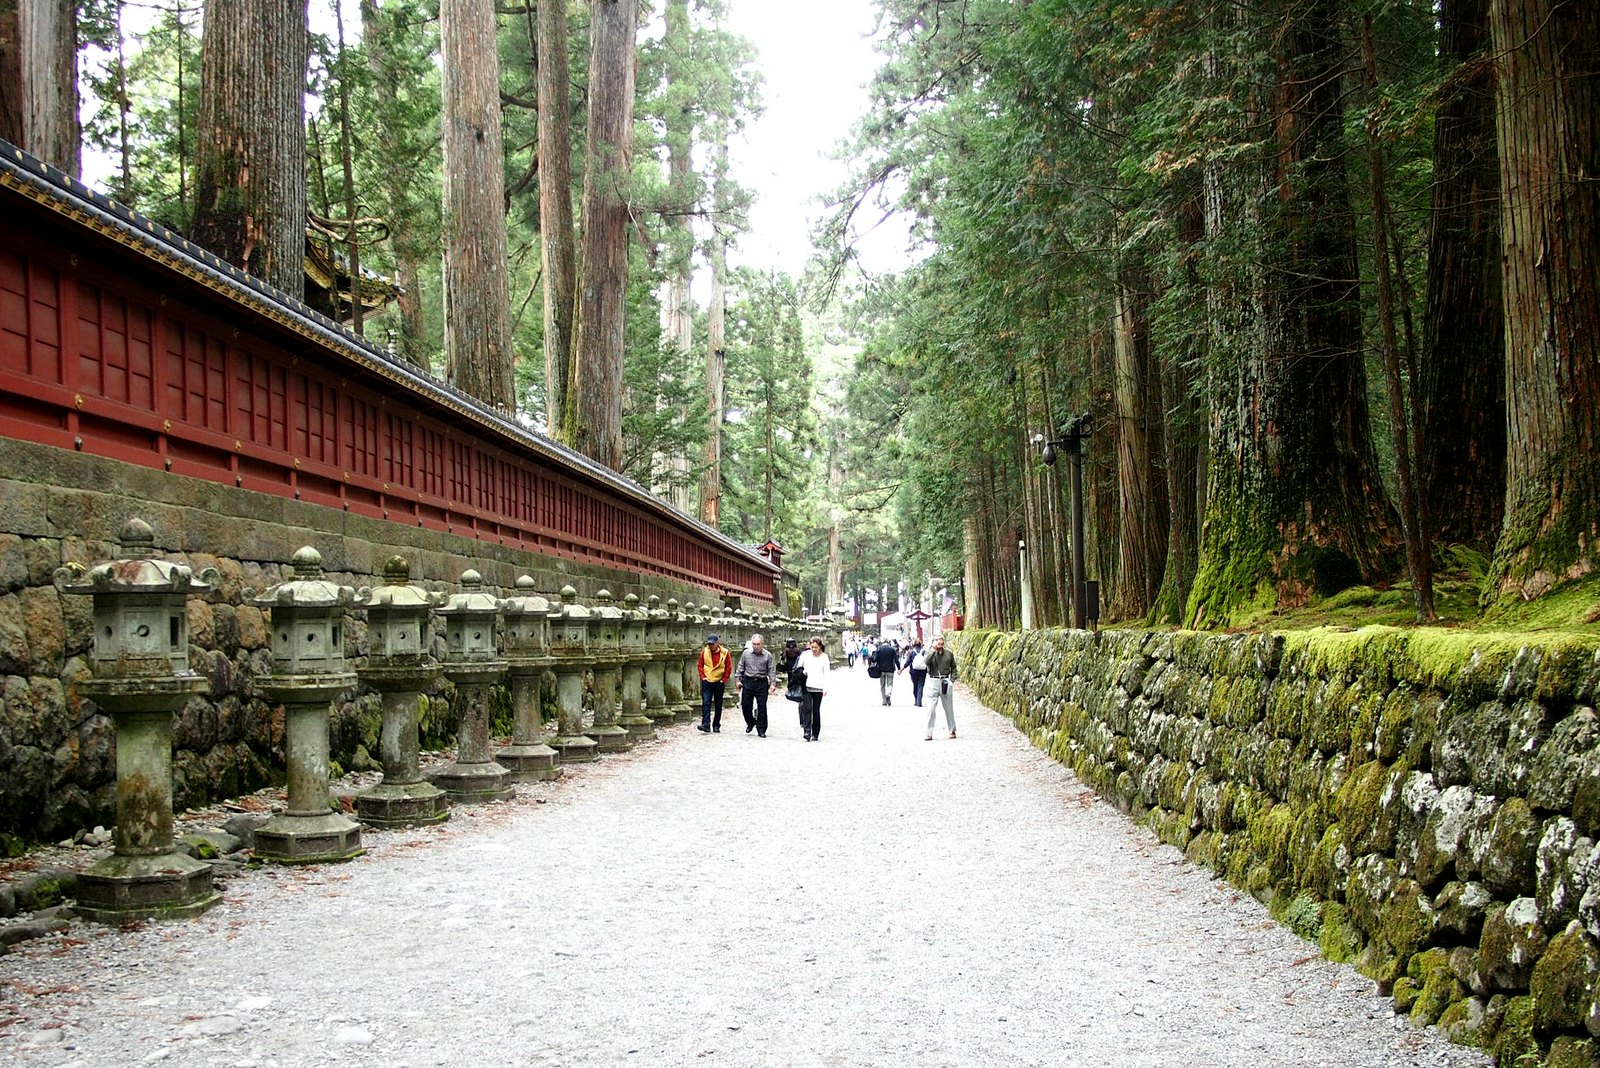 Going through the pine trees, from one temple to another